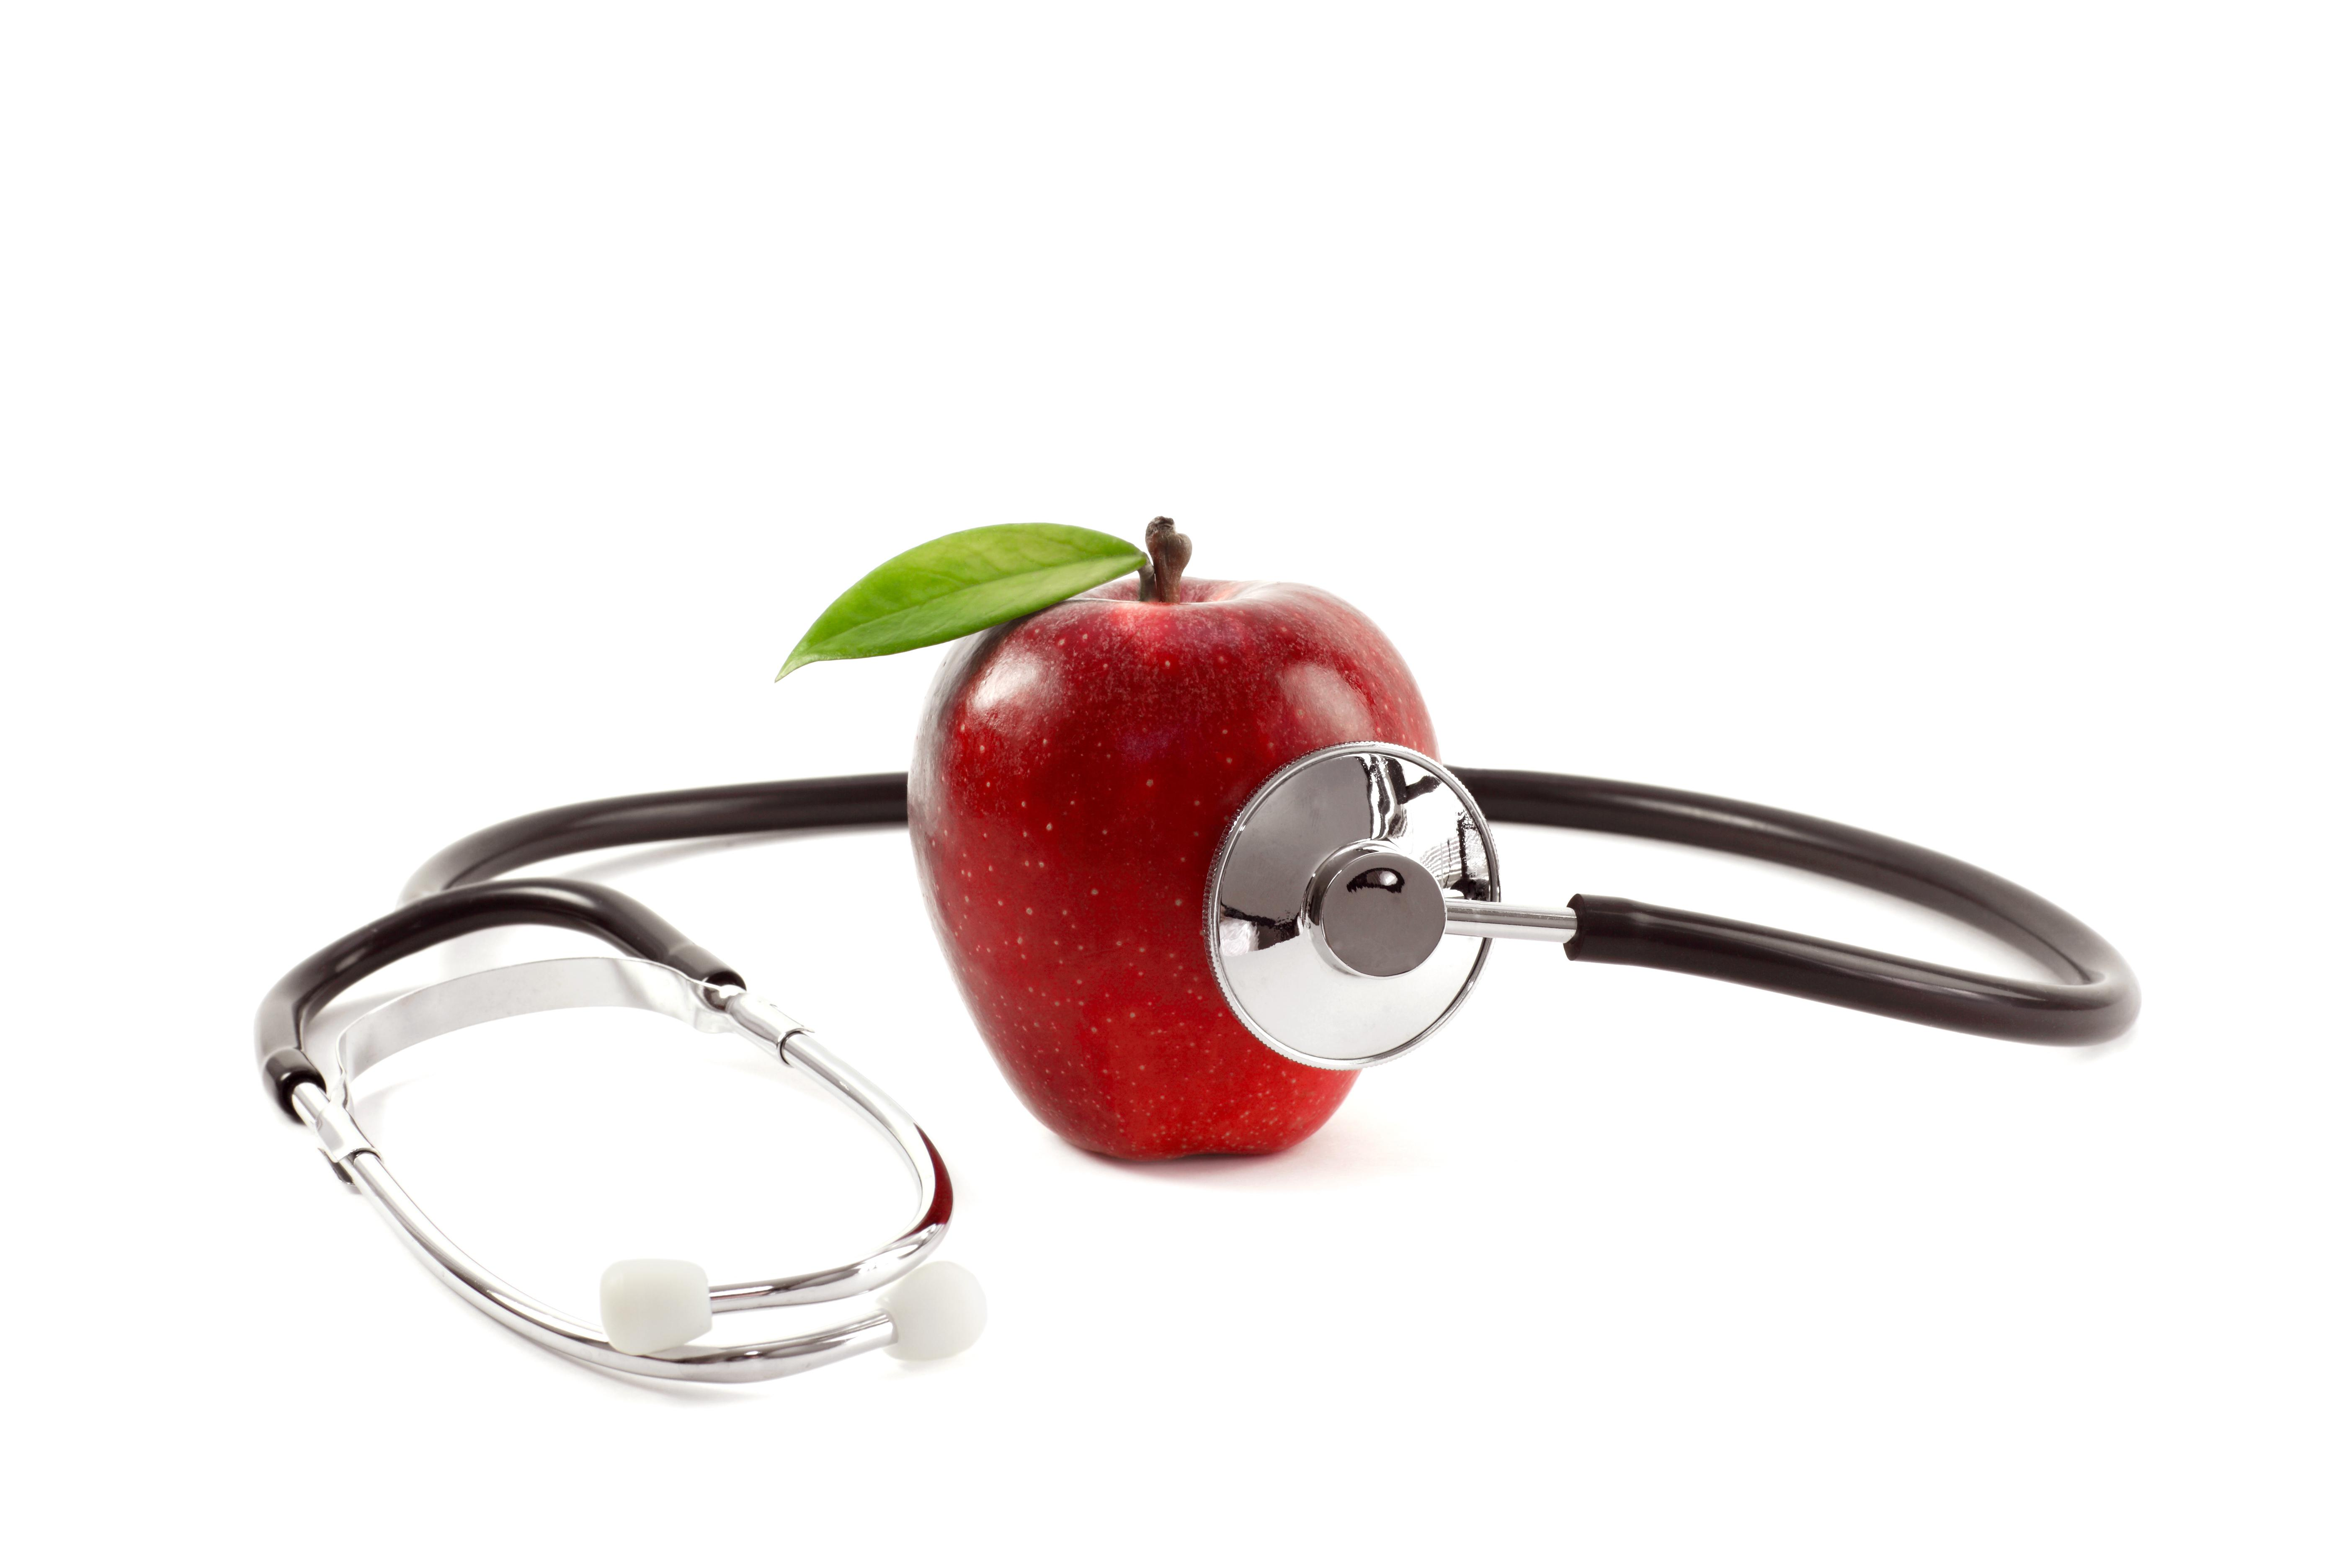 Healthcare Check-up with Apple and Stethoscope